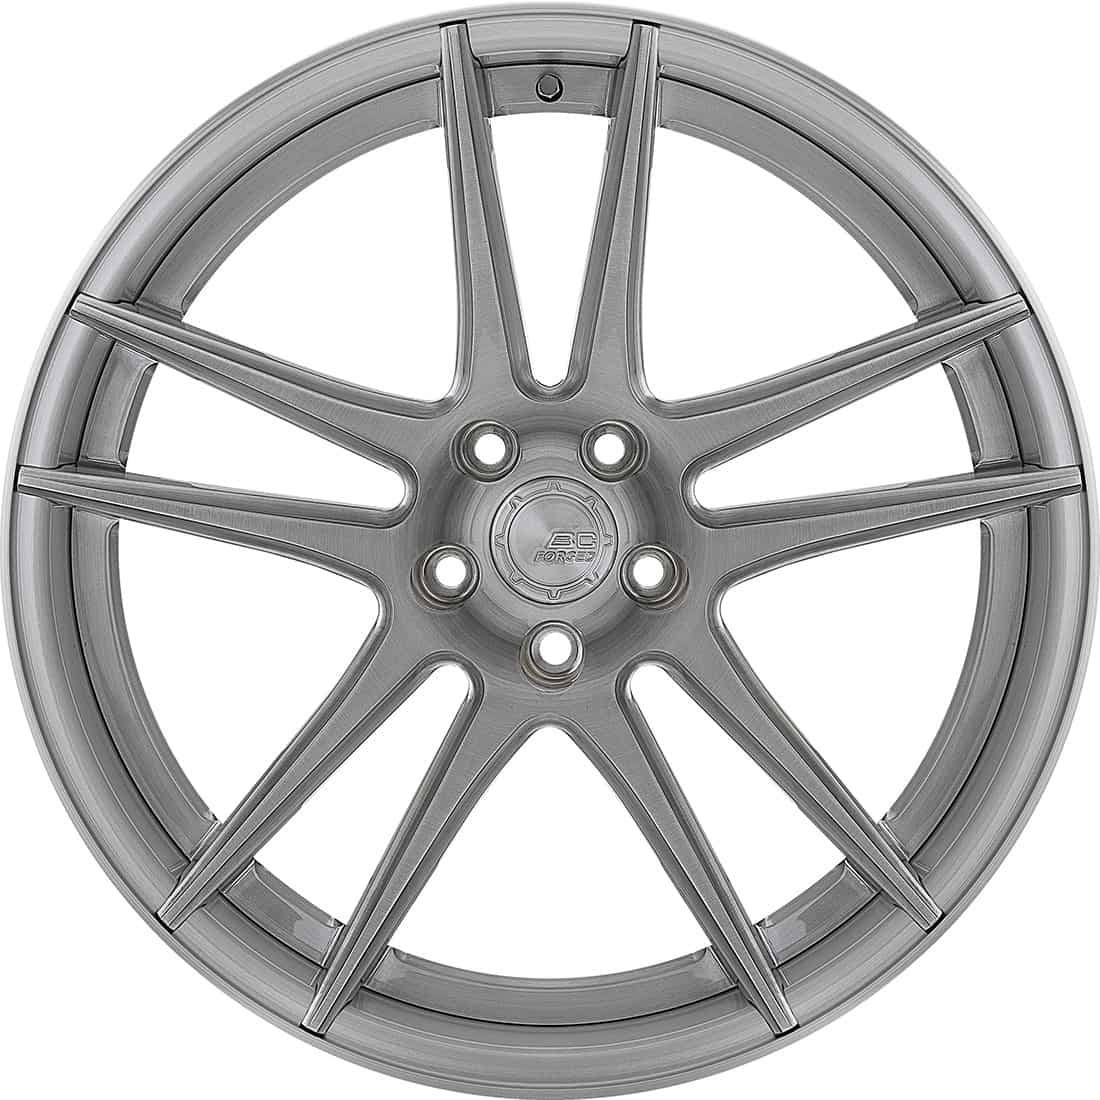 BC Forged HBR5 (HBR Series)